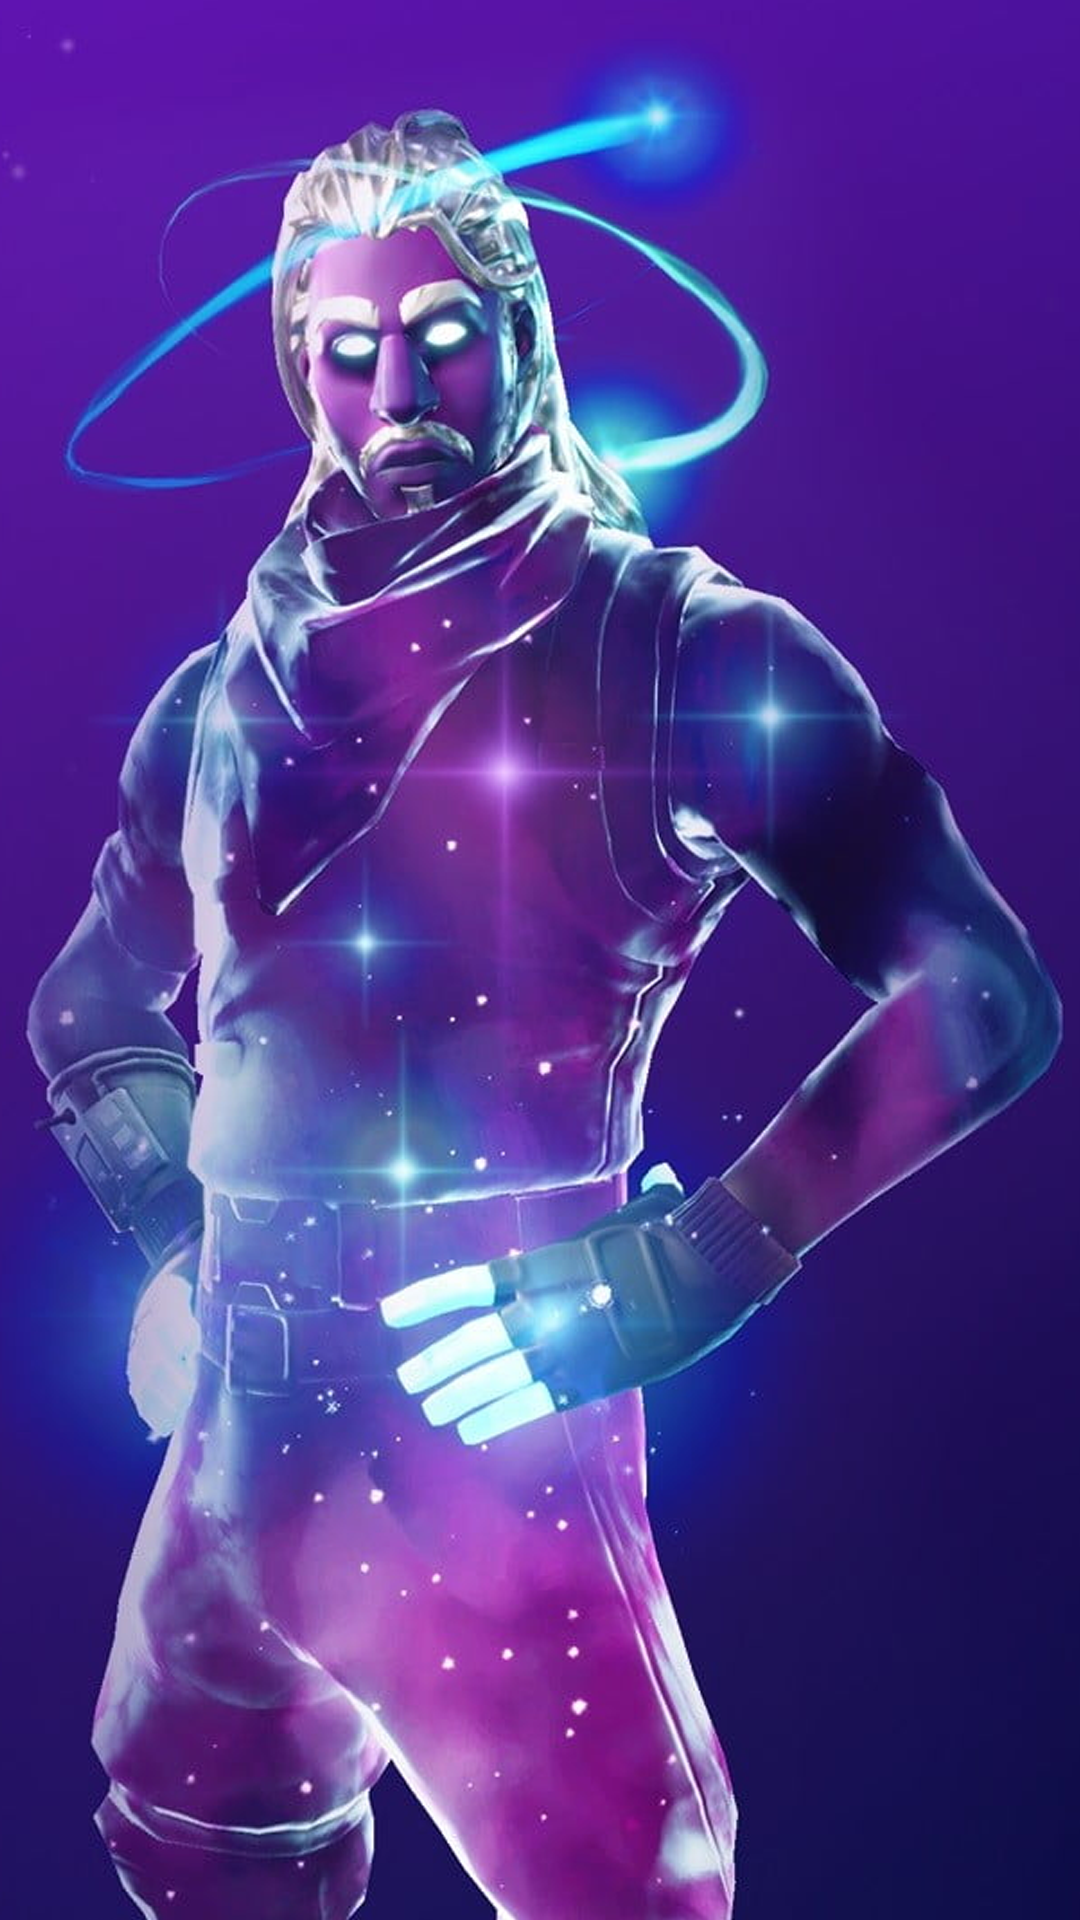 Fortnite Wallpapers Best Gaming Wallpapers Gaming Wallpapers Game Wallpaper Iphone